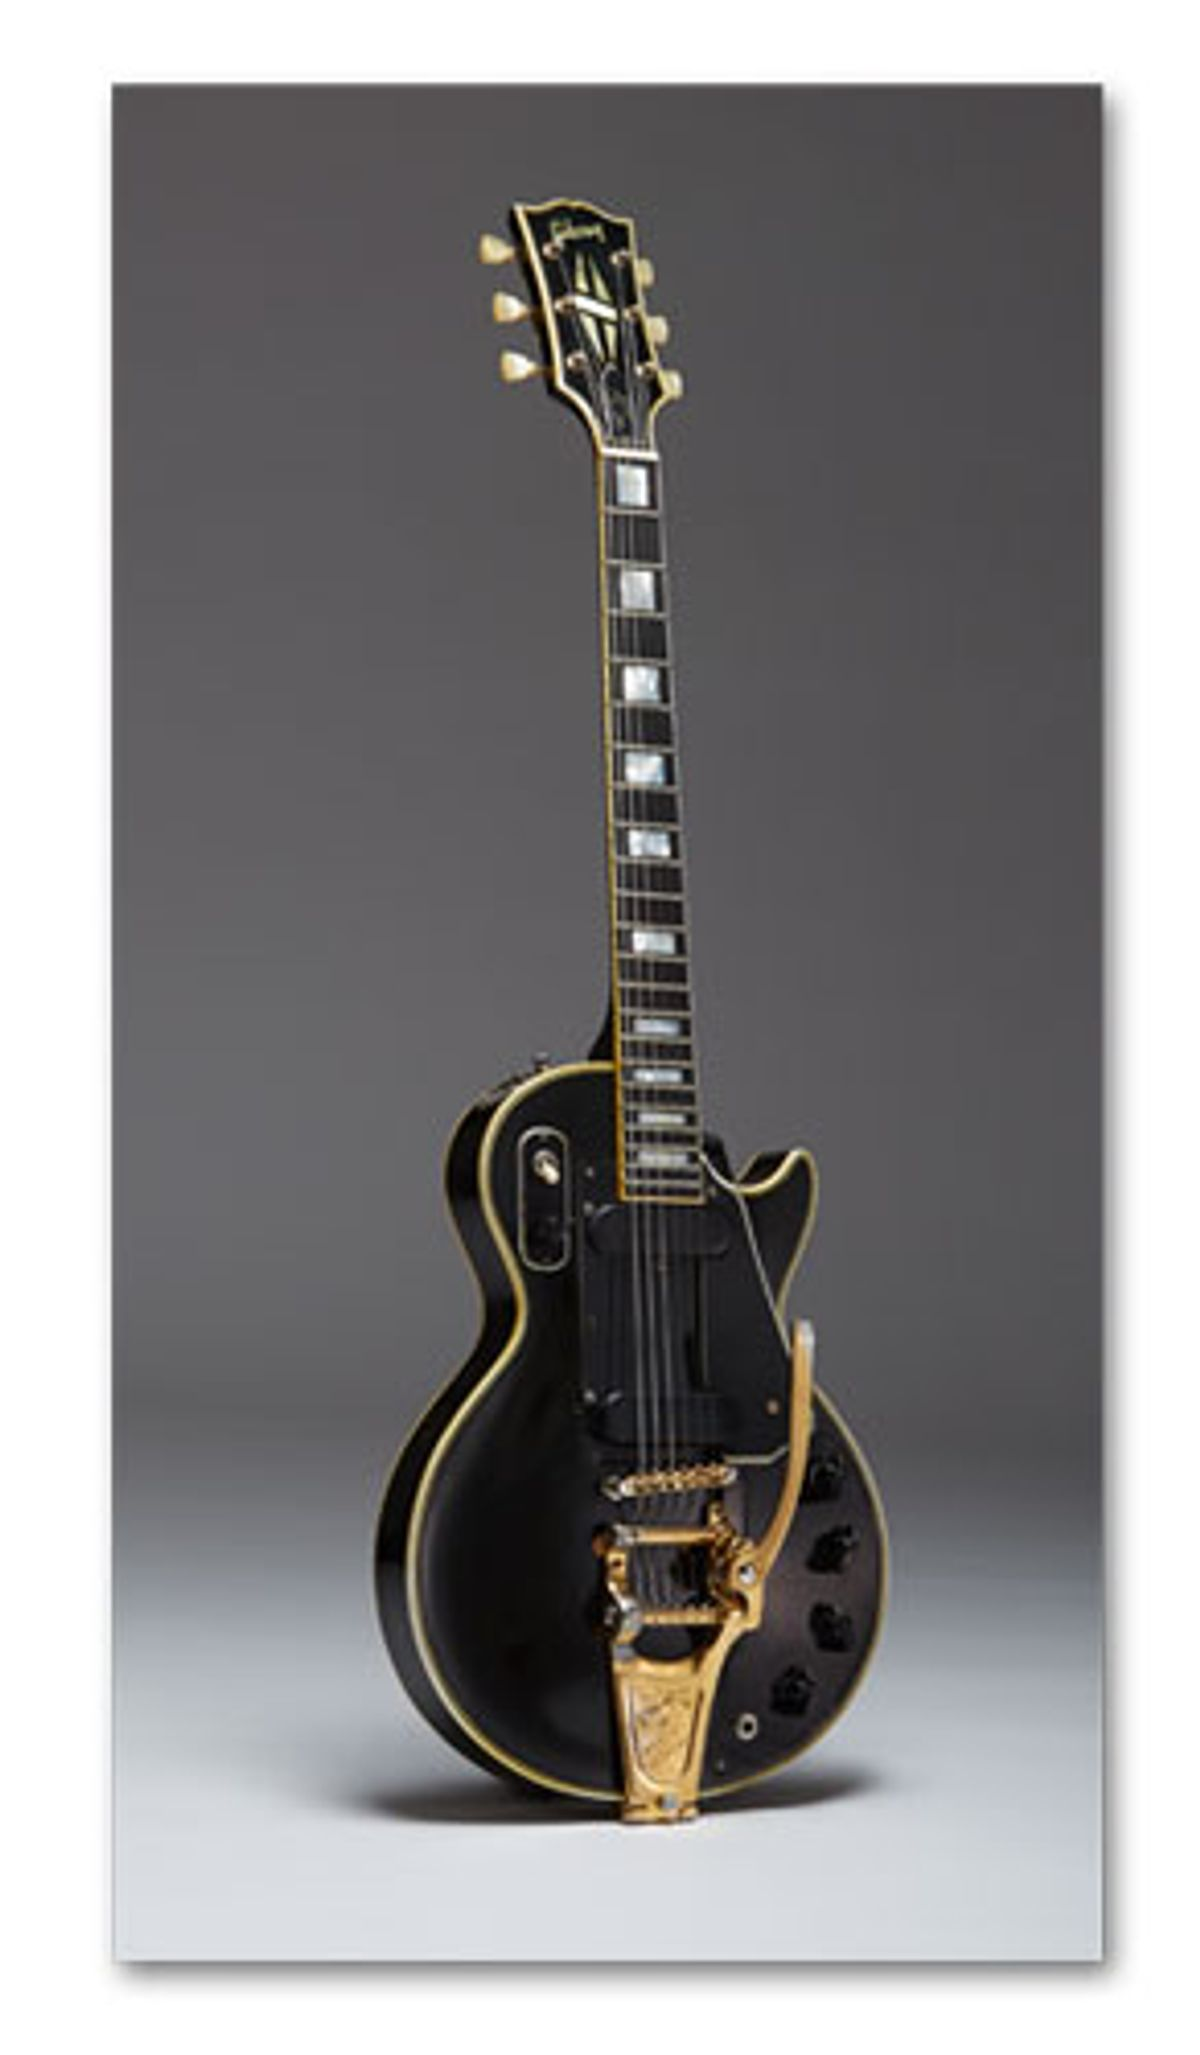 """Auction to Feature Les Paul's Original """"Black Beauty"""", Chet Atkins' """"Dark Eyes"""" Gretsch, and More"""